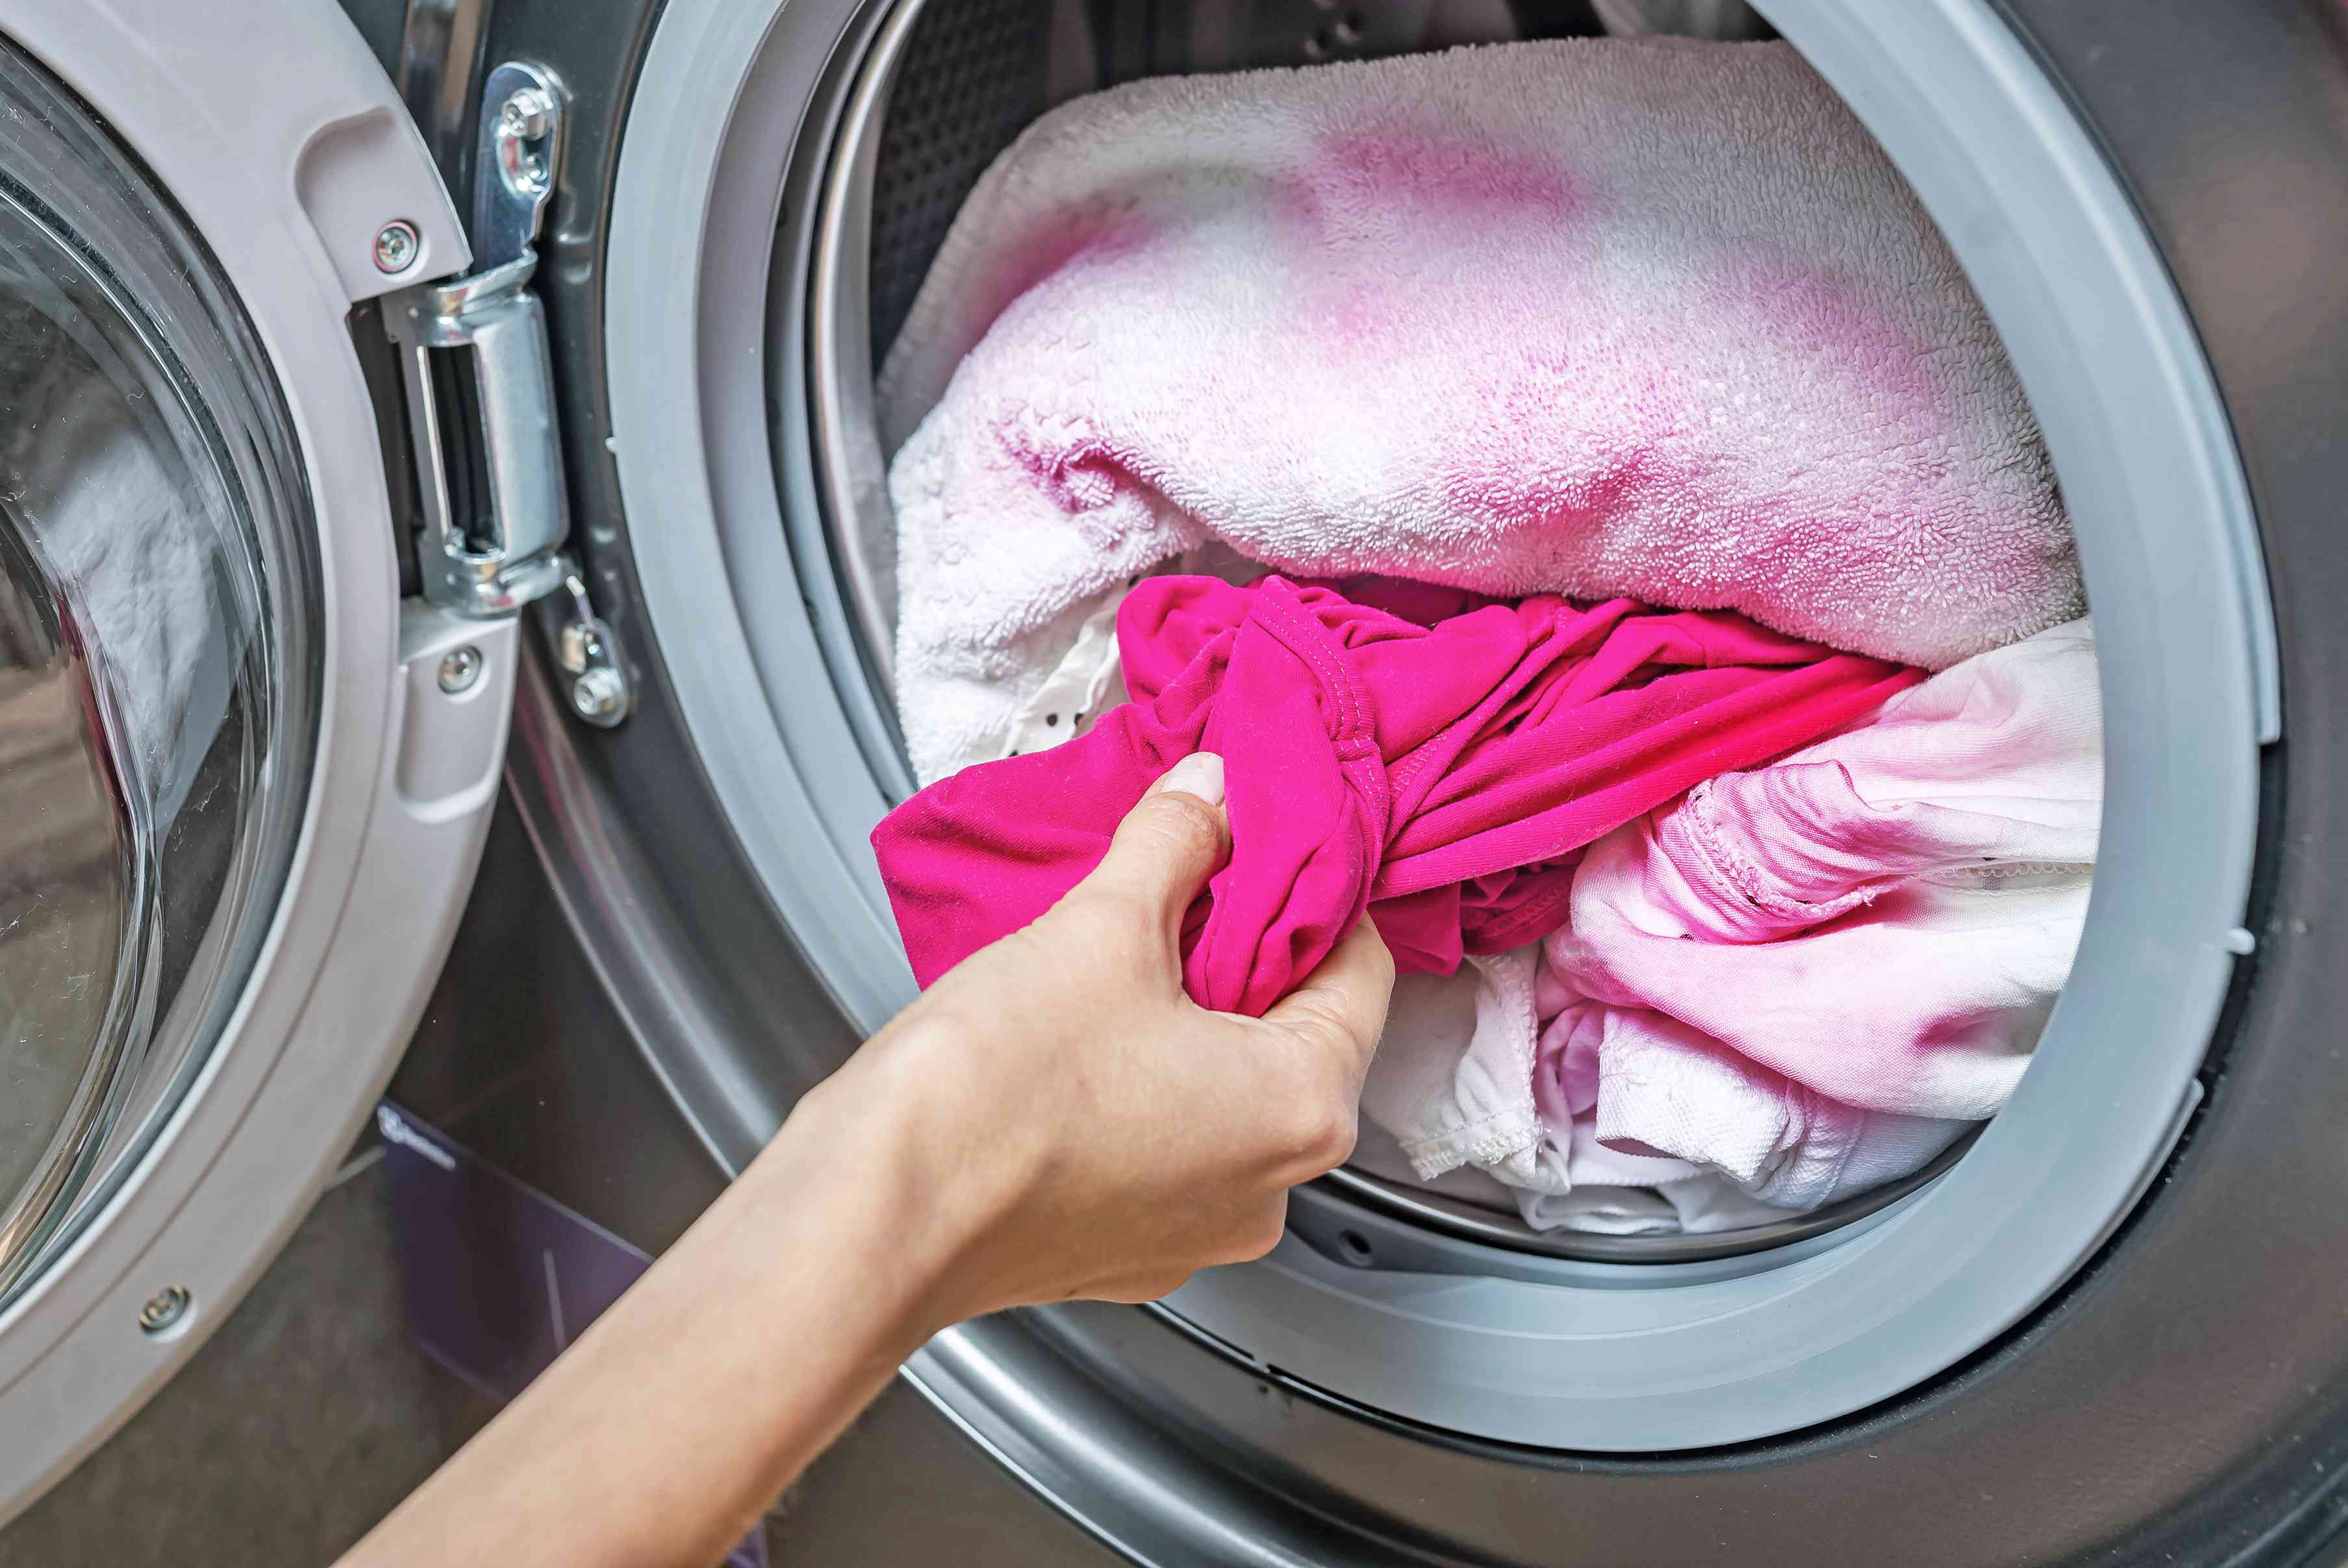 rewashing clothing with bleach and detergent